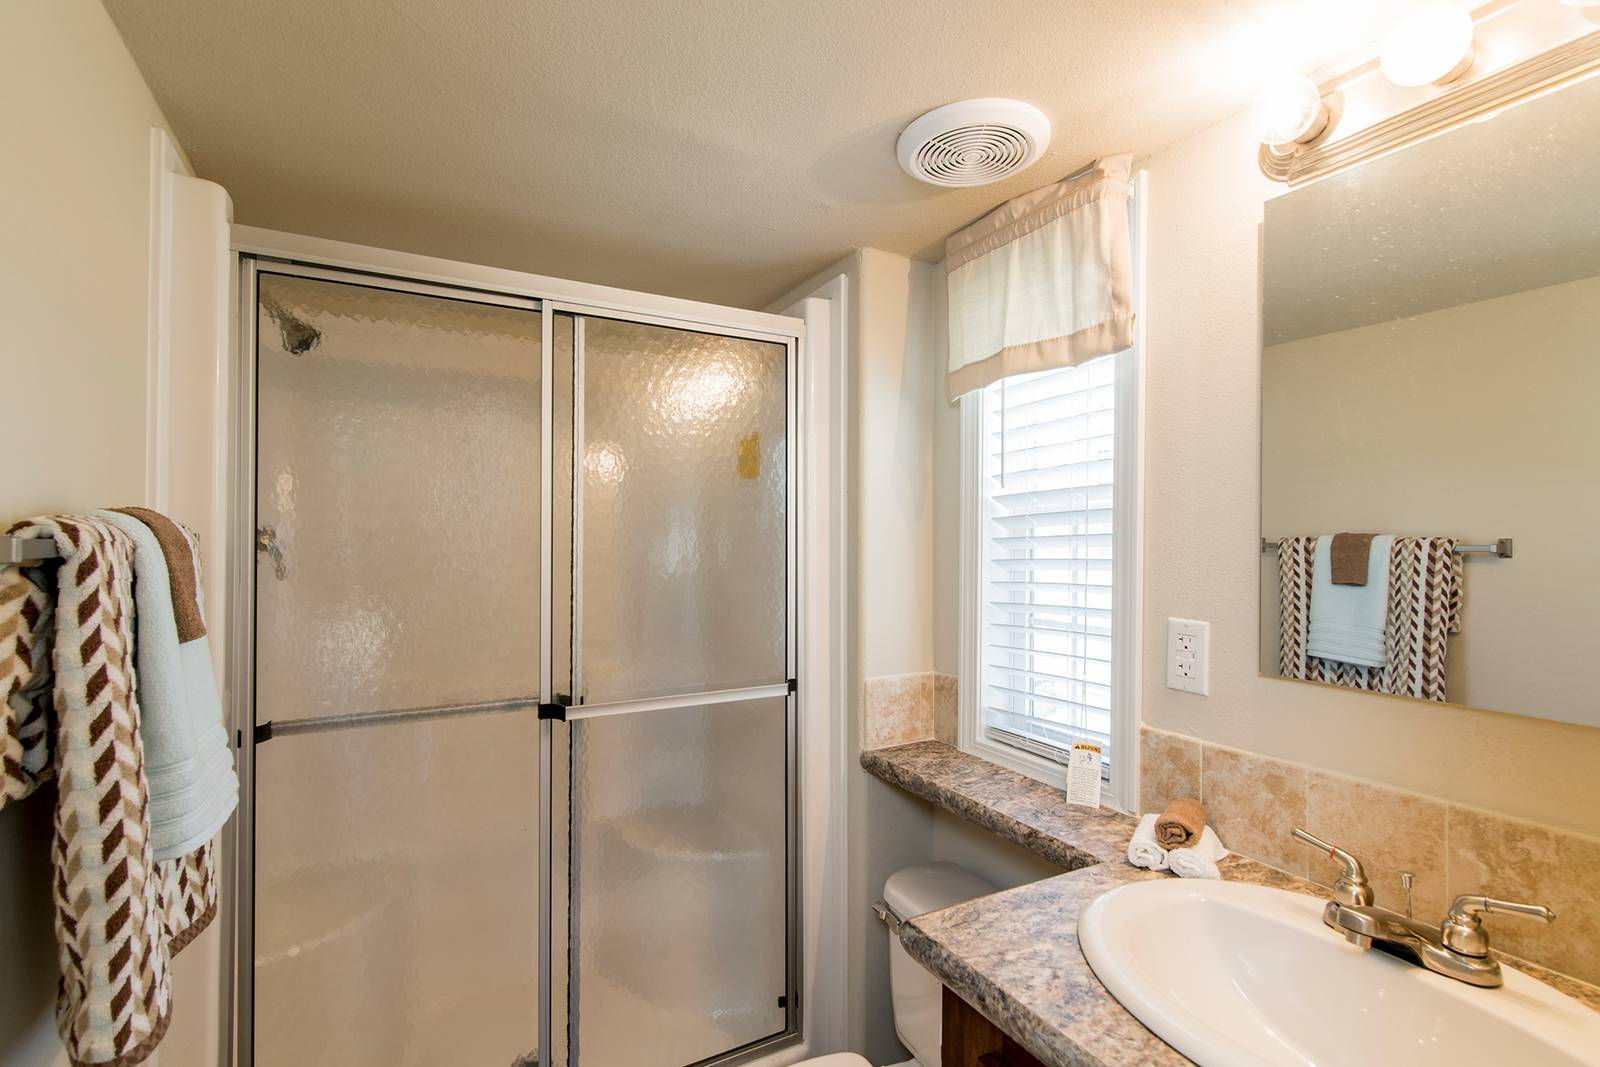 The Charleson APH-522A Bathroom